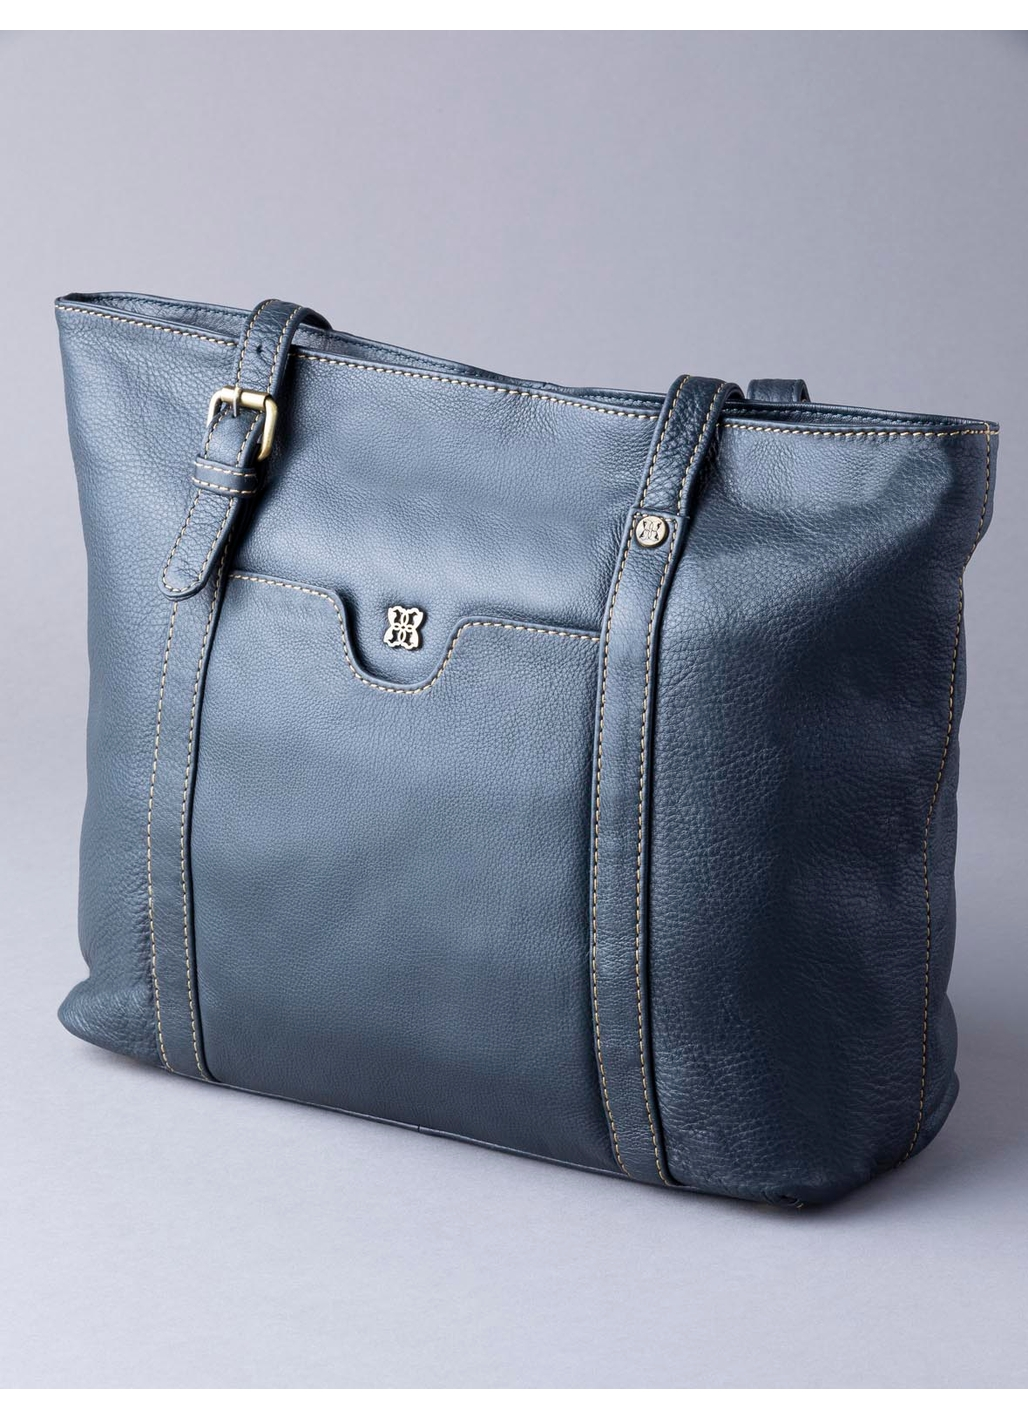 Rickerby Leather Tote Bag in Navy